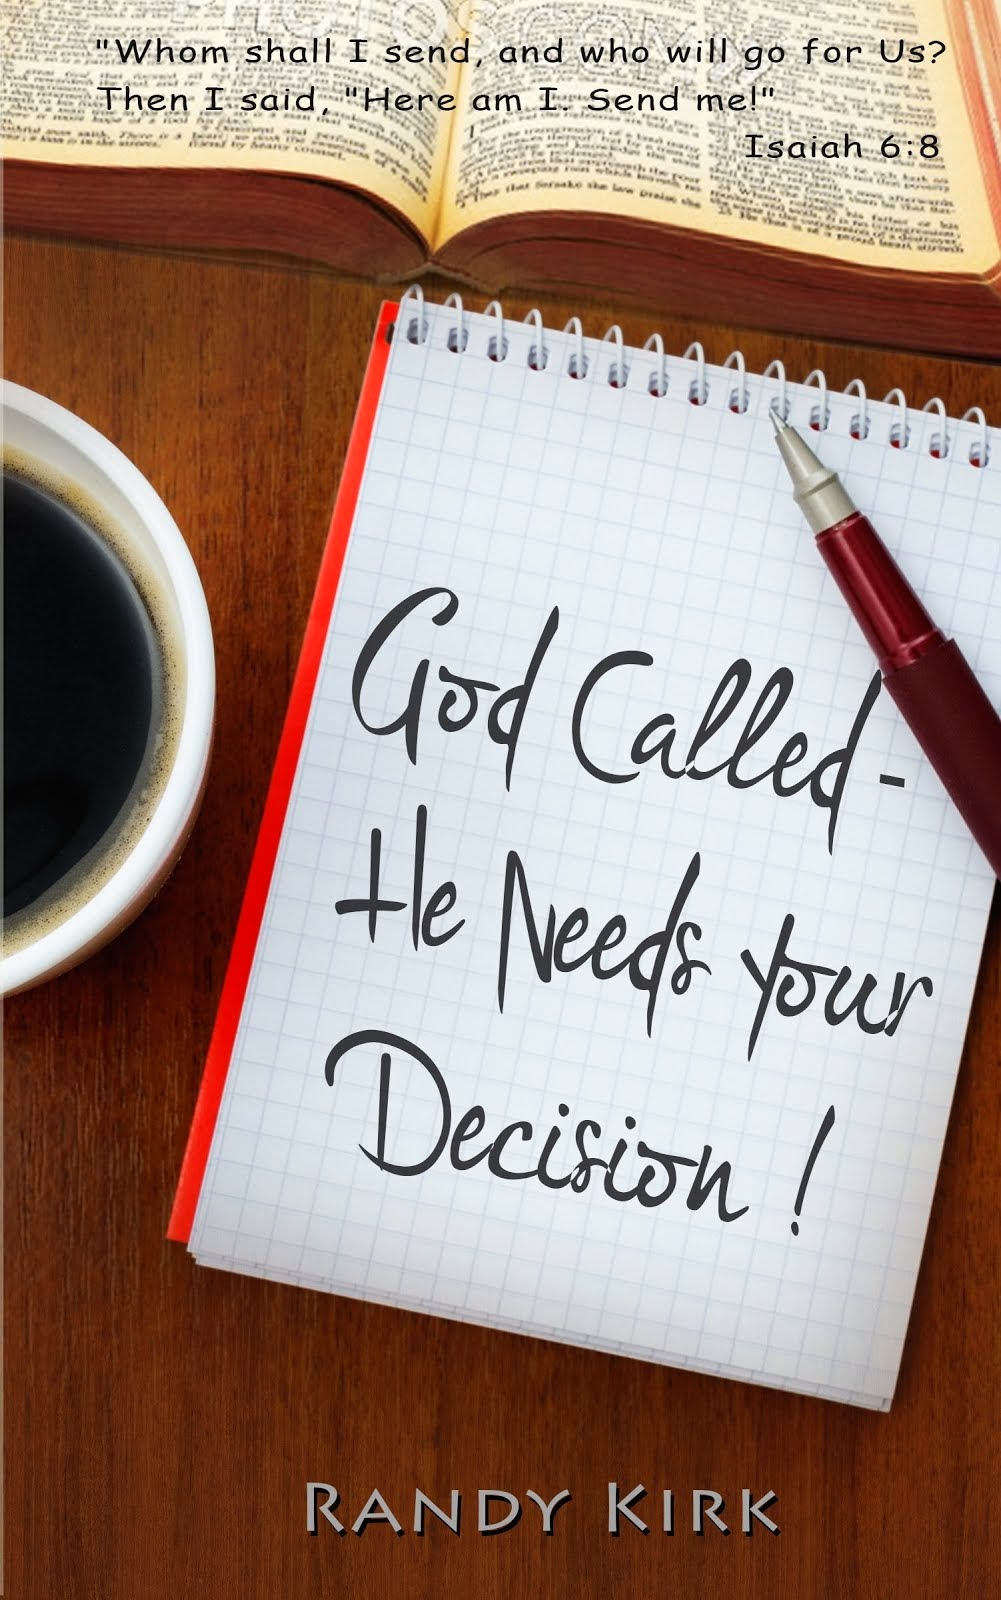 God Called - He Needs Your Decision!